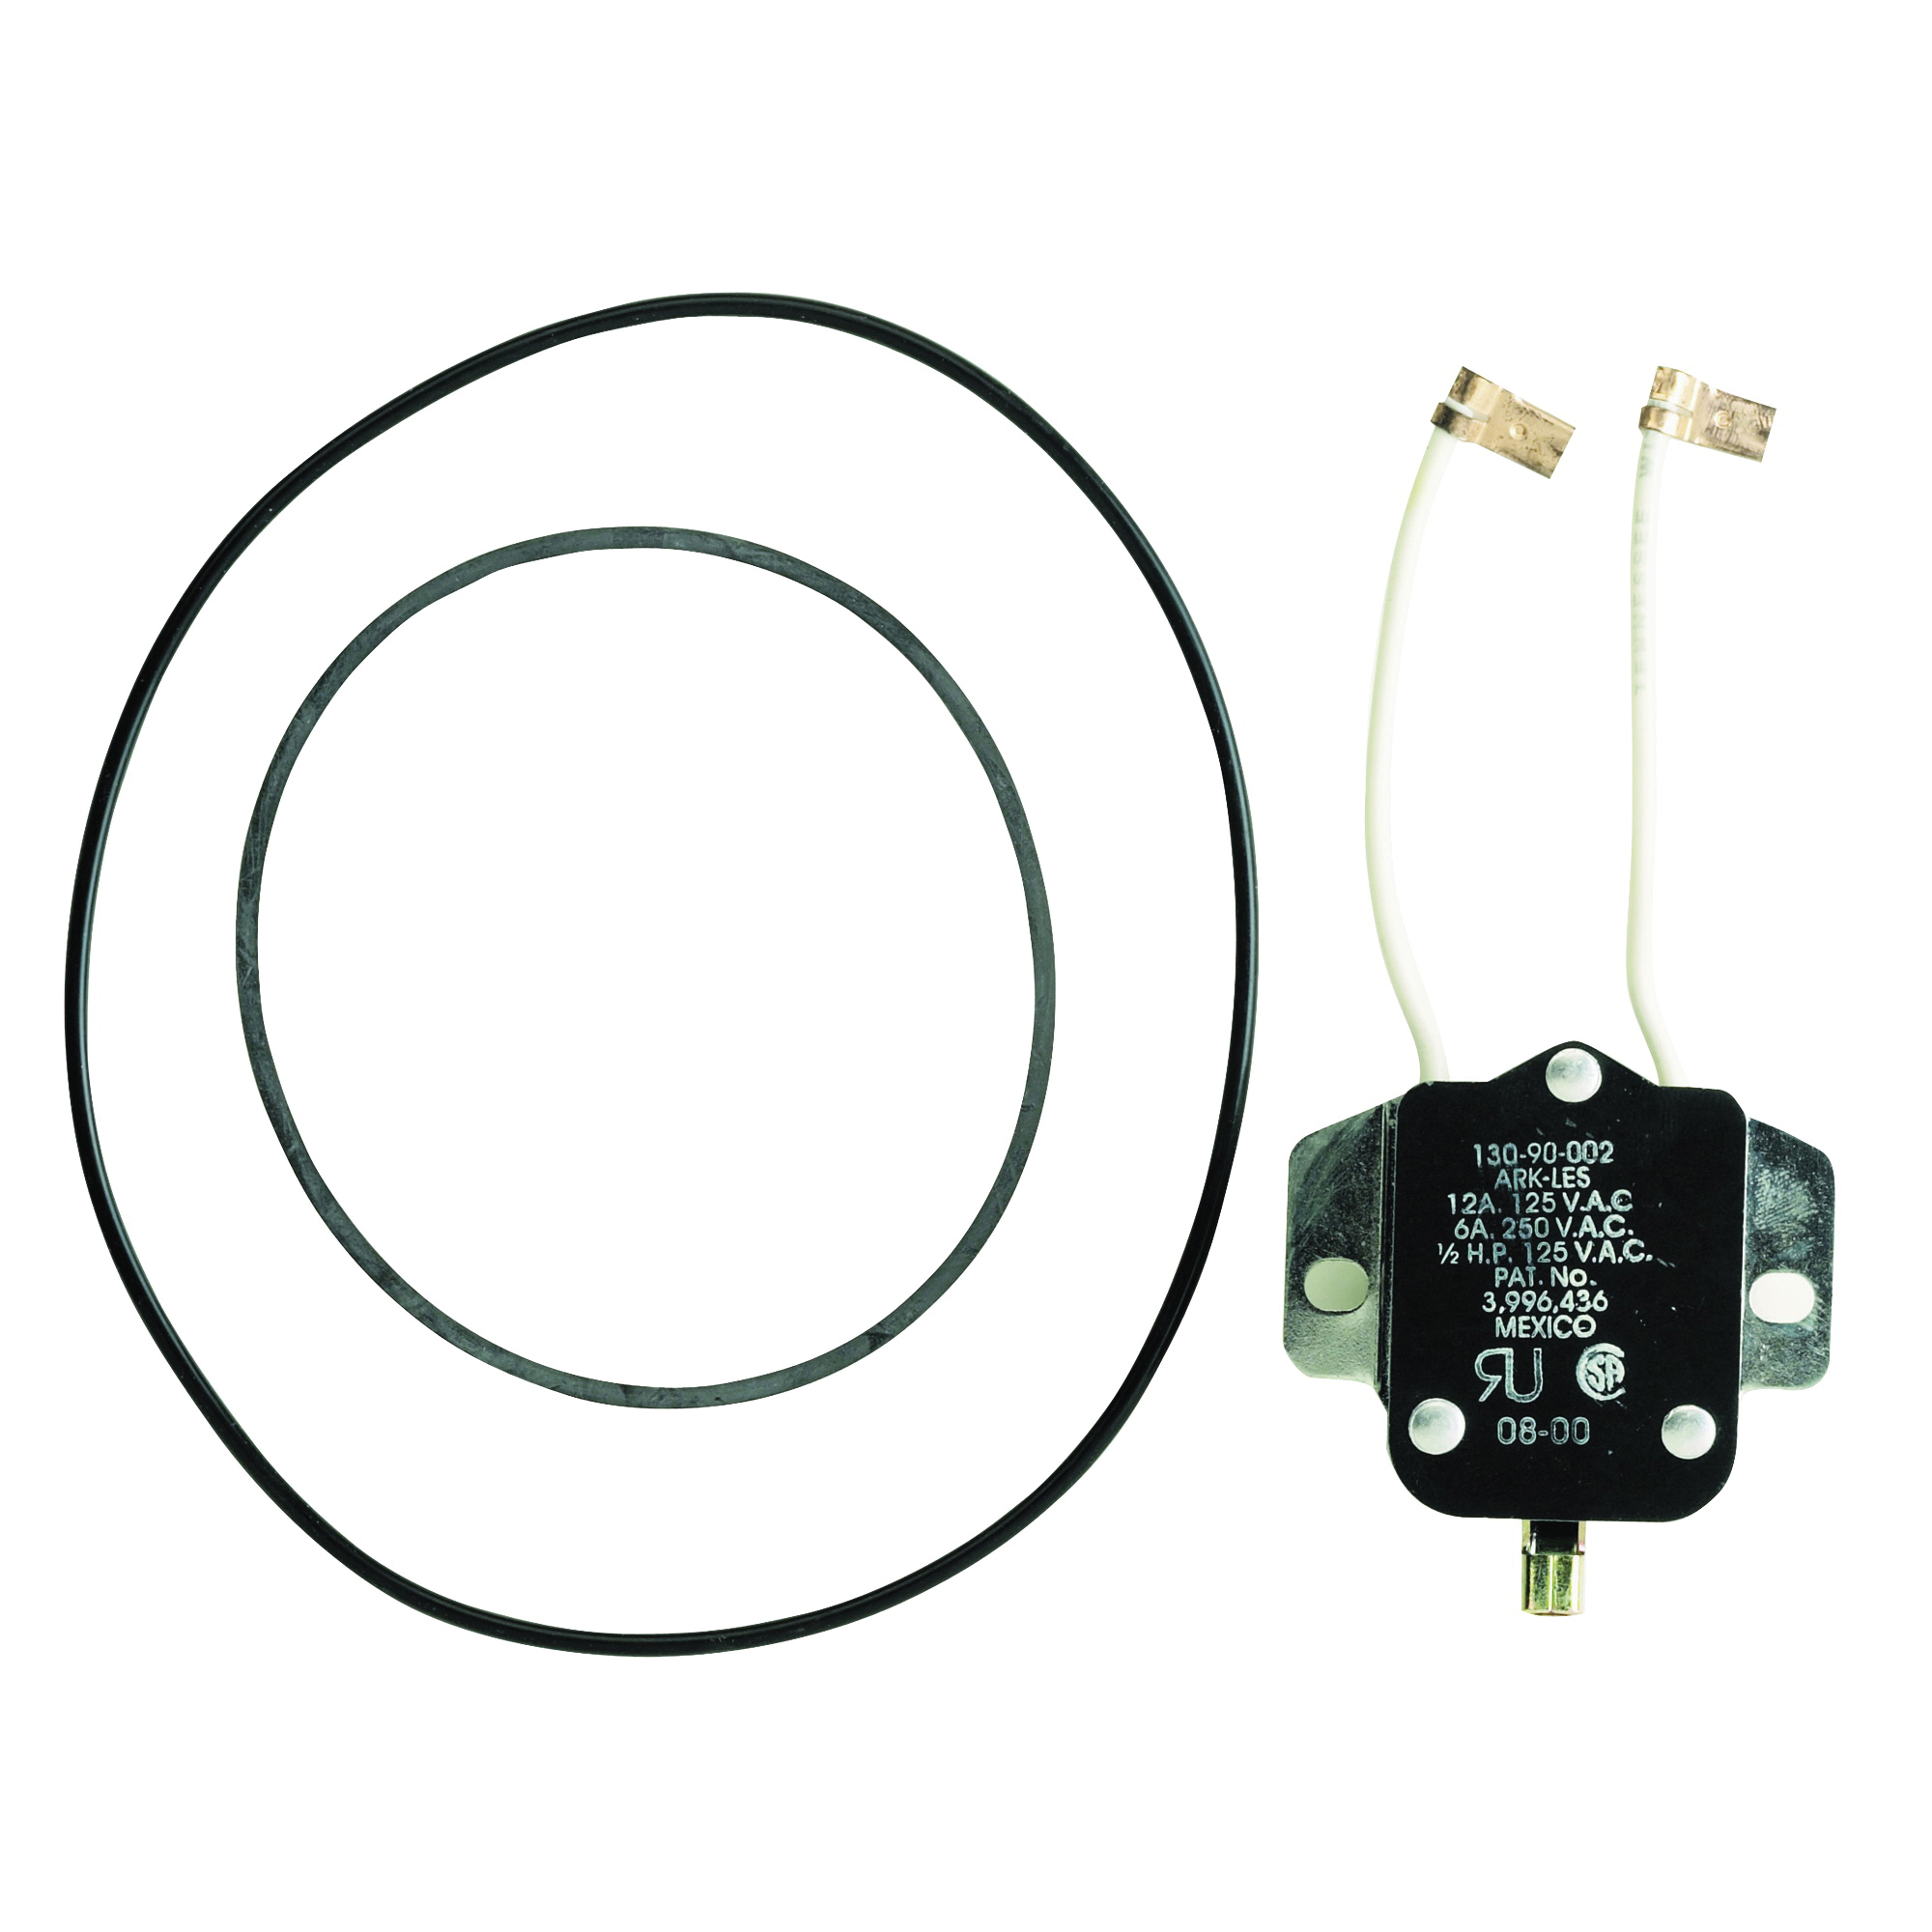 Picture of WAYNE 56395 Pump Switch Kit, For: CDU, SPF, SSPF Model Sump Pumps